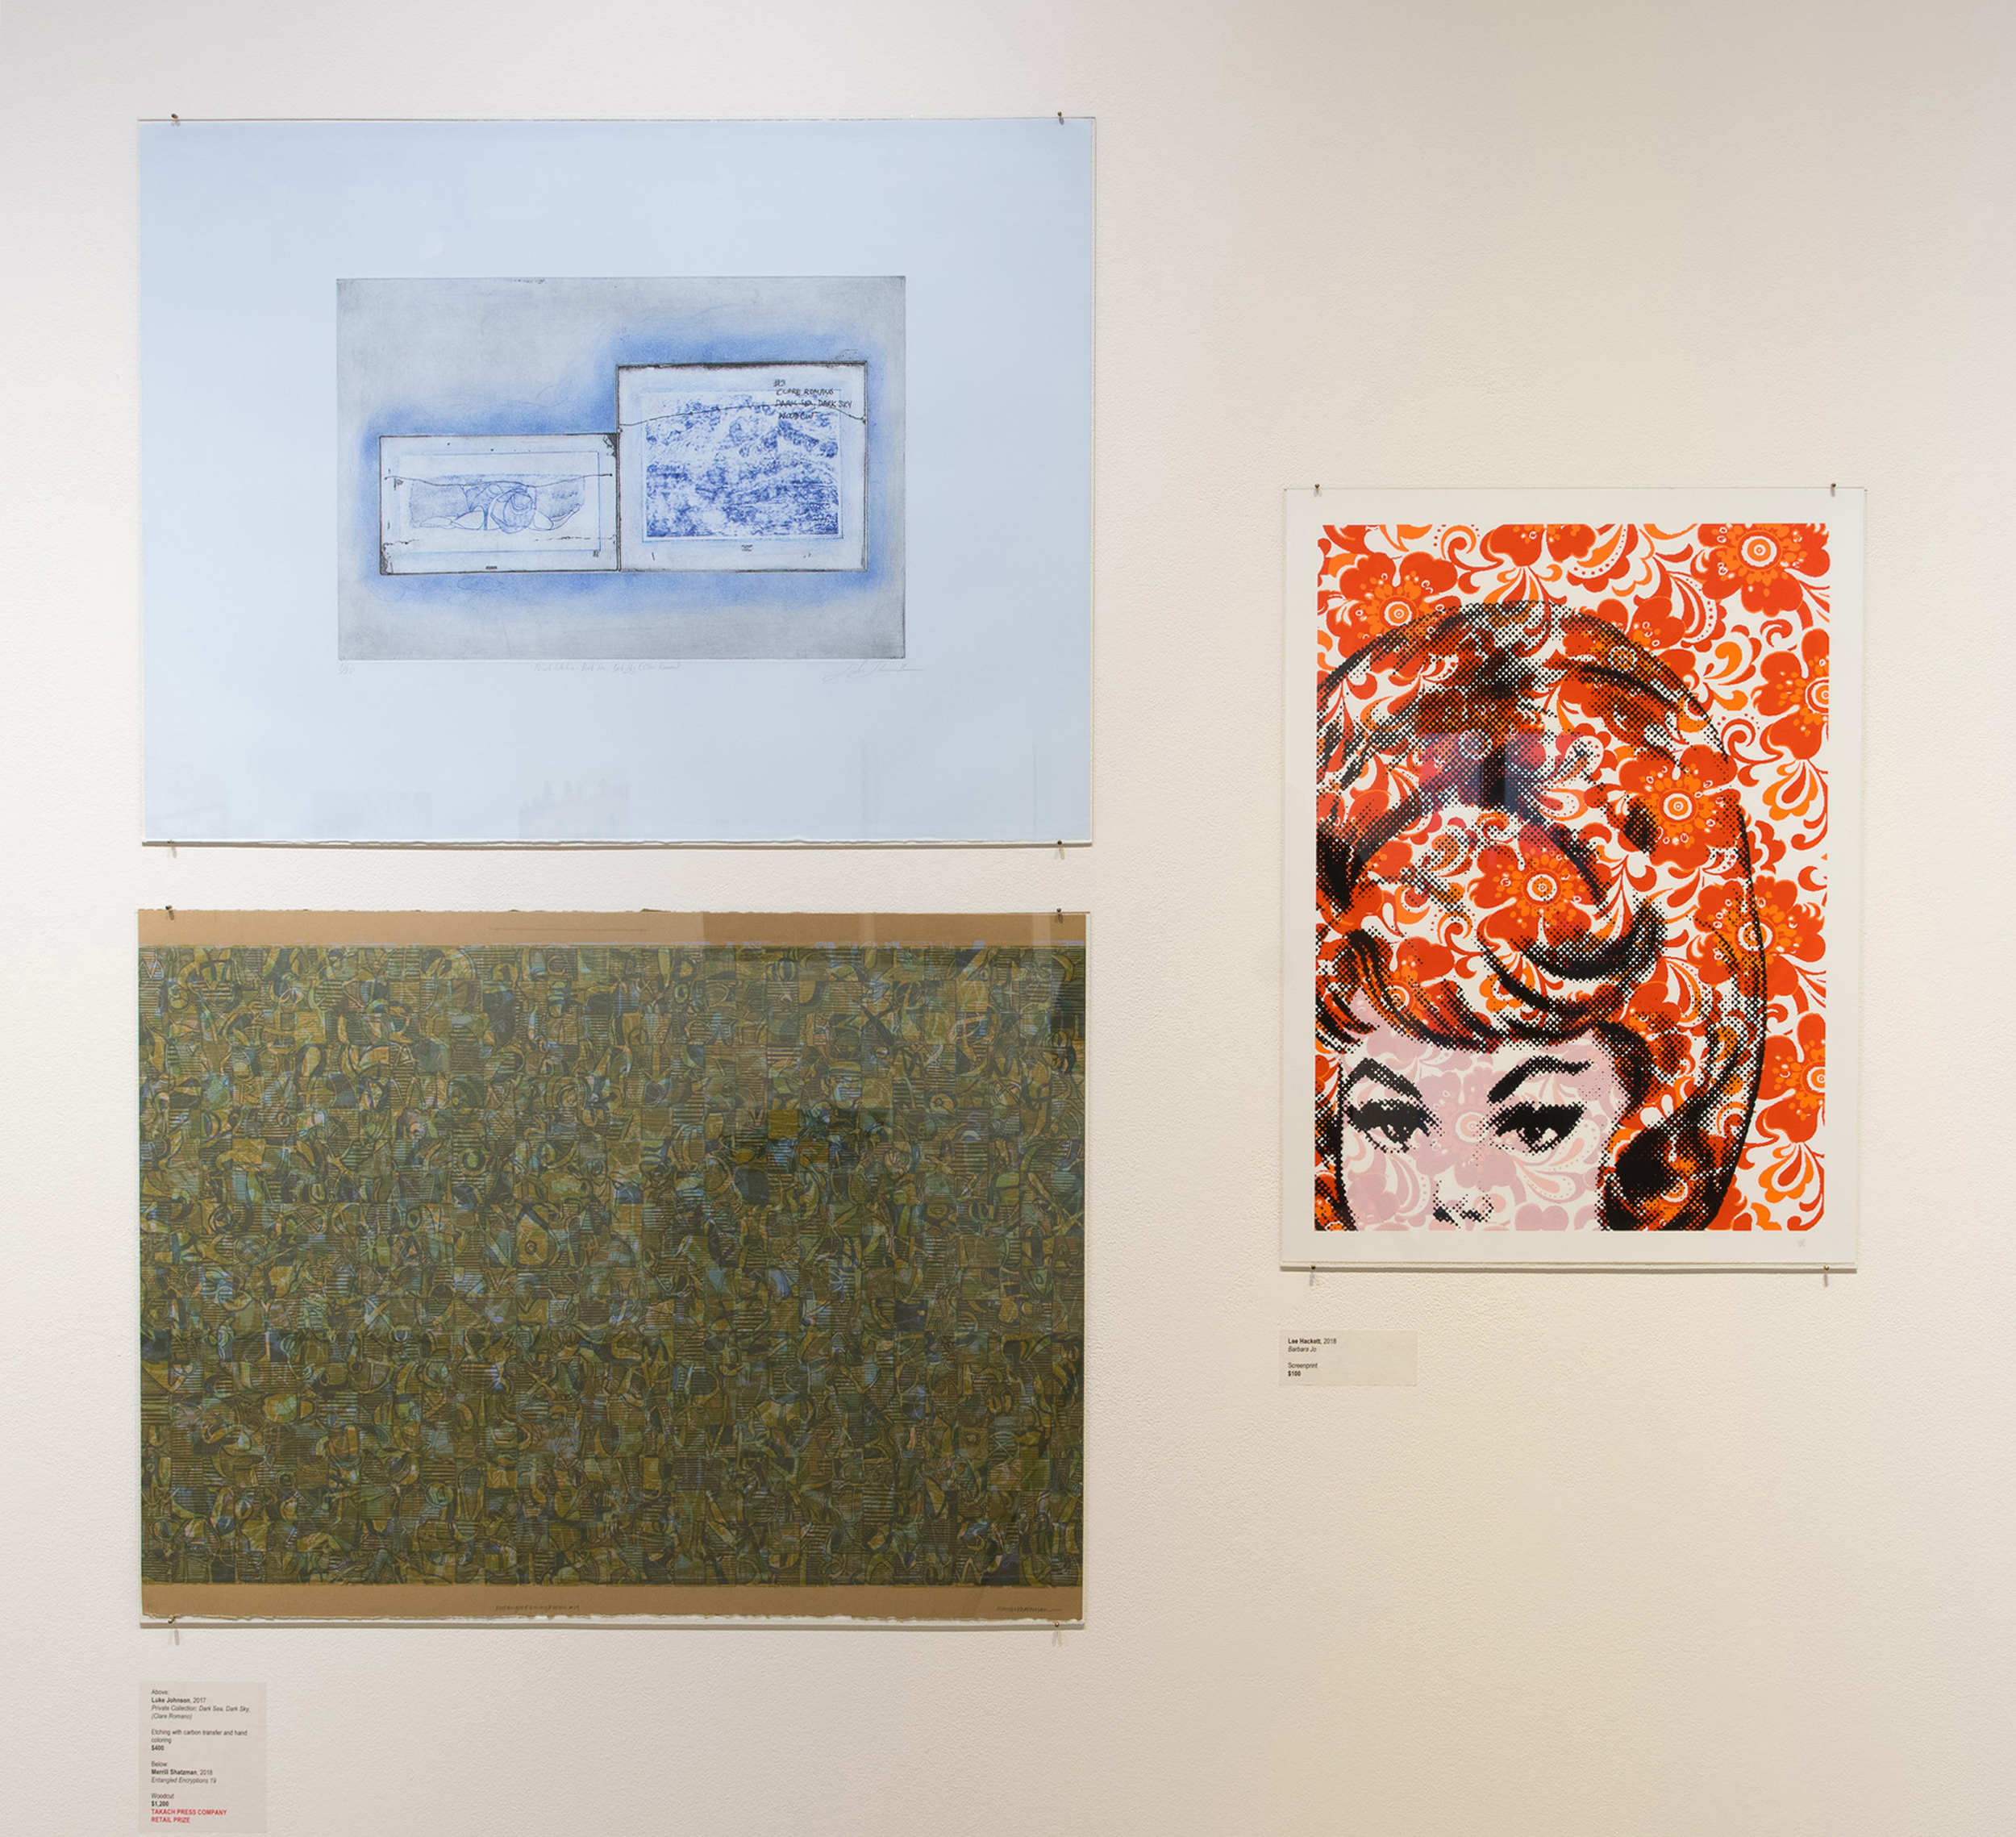 Highpoint PrintmakingStand Out Prints Exhibit180927a0478.JPG